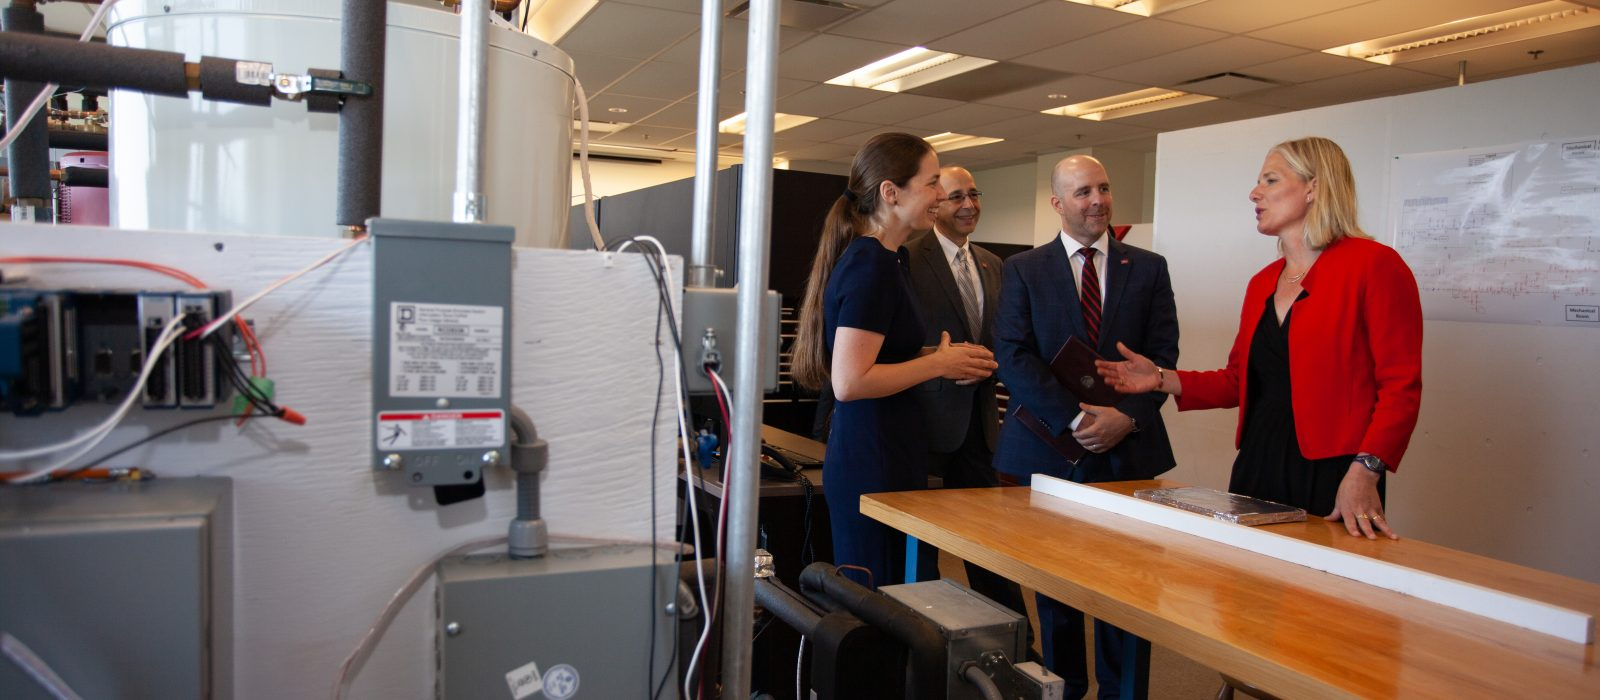 The Honourable Minister of Environment and Climate Change Catherine McKenna speaks with lead researcher Professor Cynthia Cruickshank, Carleton's Vice-President, Research and International Rafik Goubran, and Carleton's President and Vice-Chancellor Benoit-Antoine Bacon in a research lab setting.